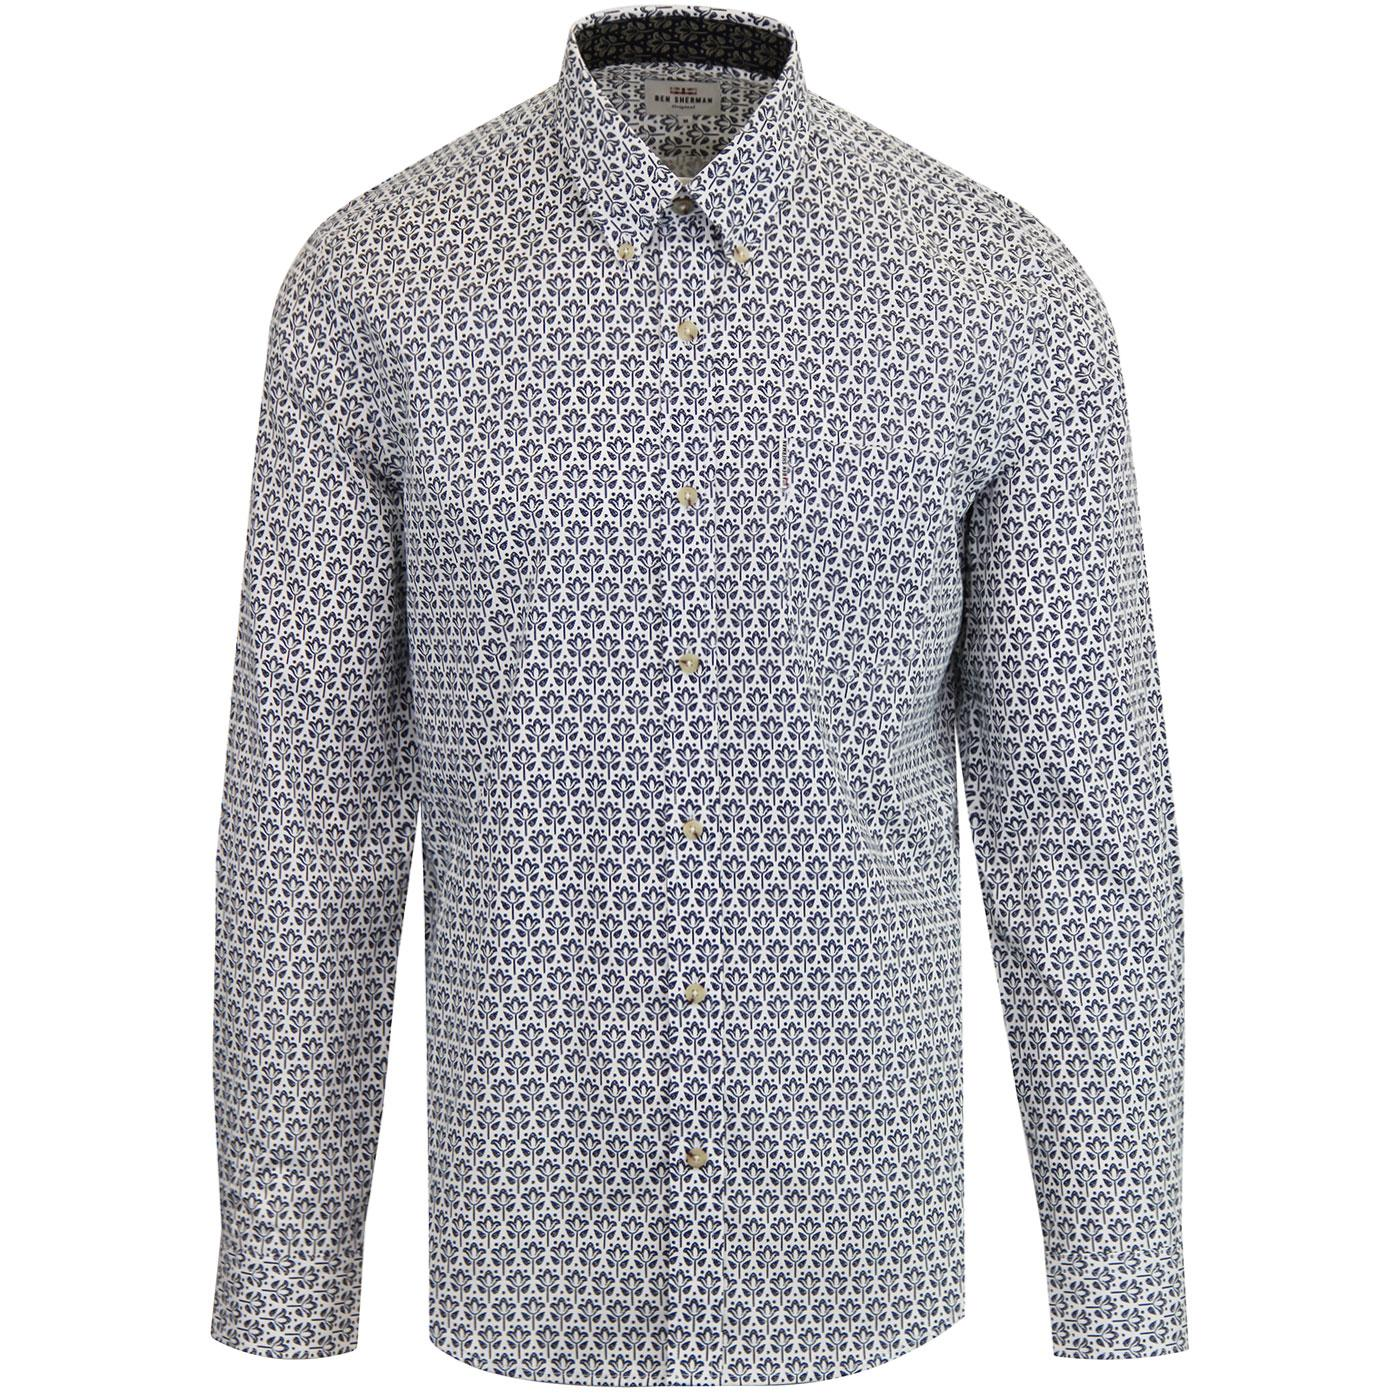 BEN SHERMAN Retro Mod Distressed Wallpaper Shirt W